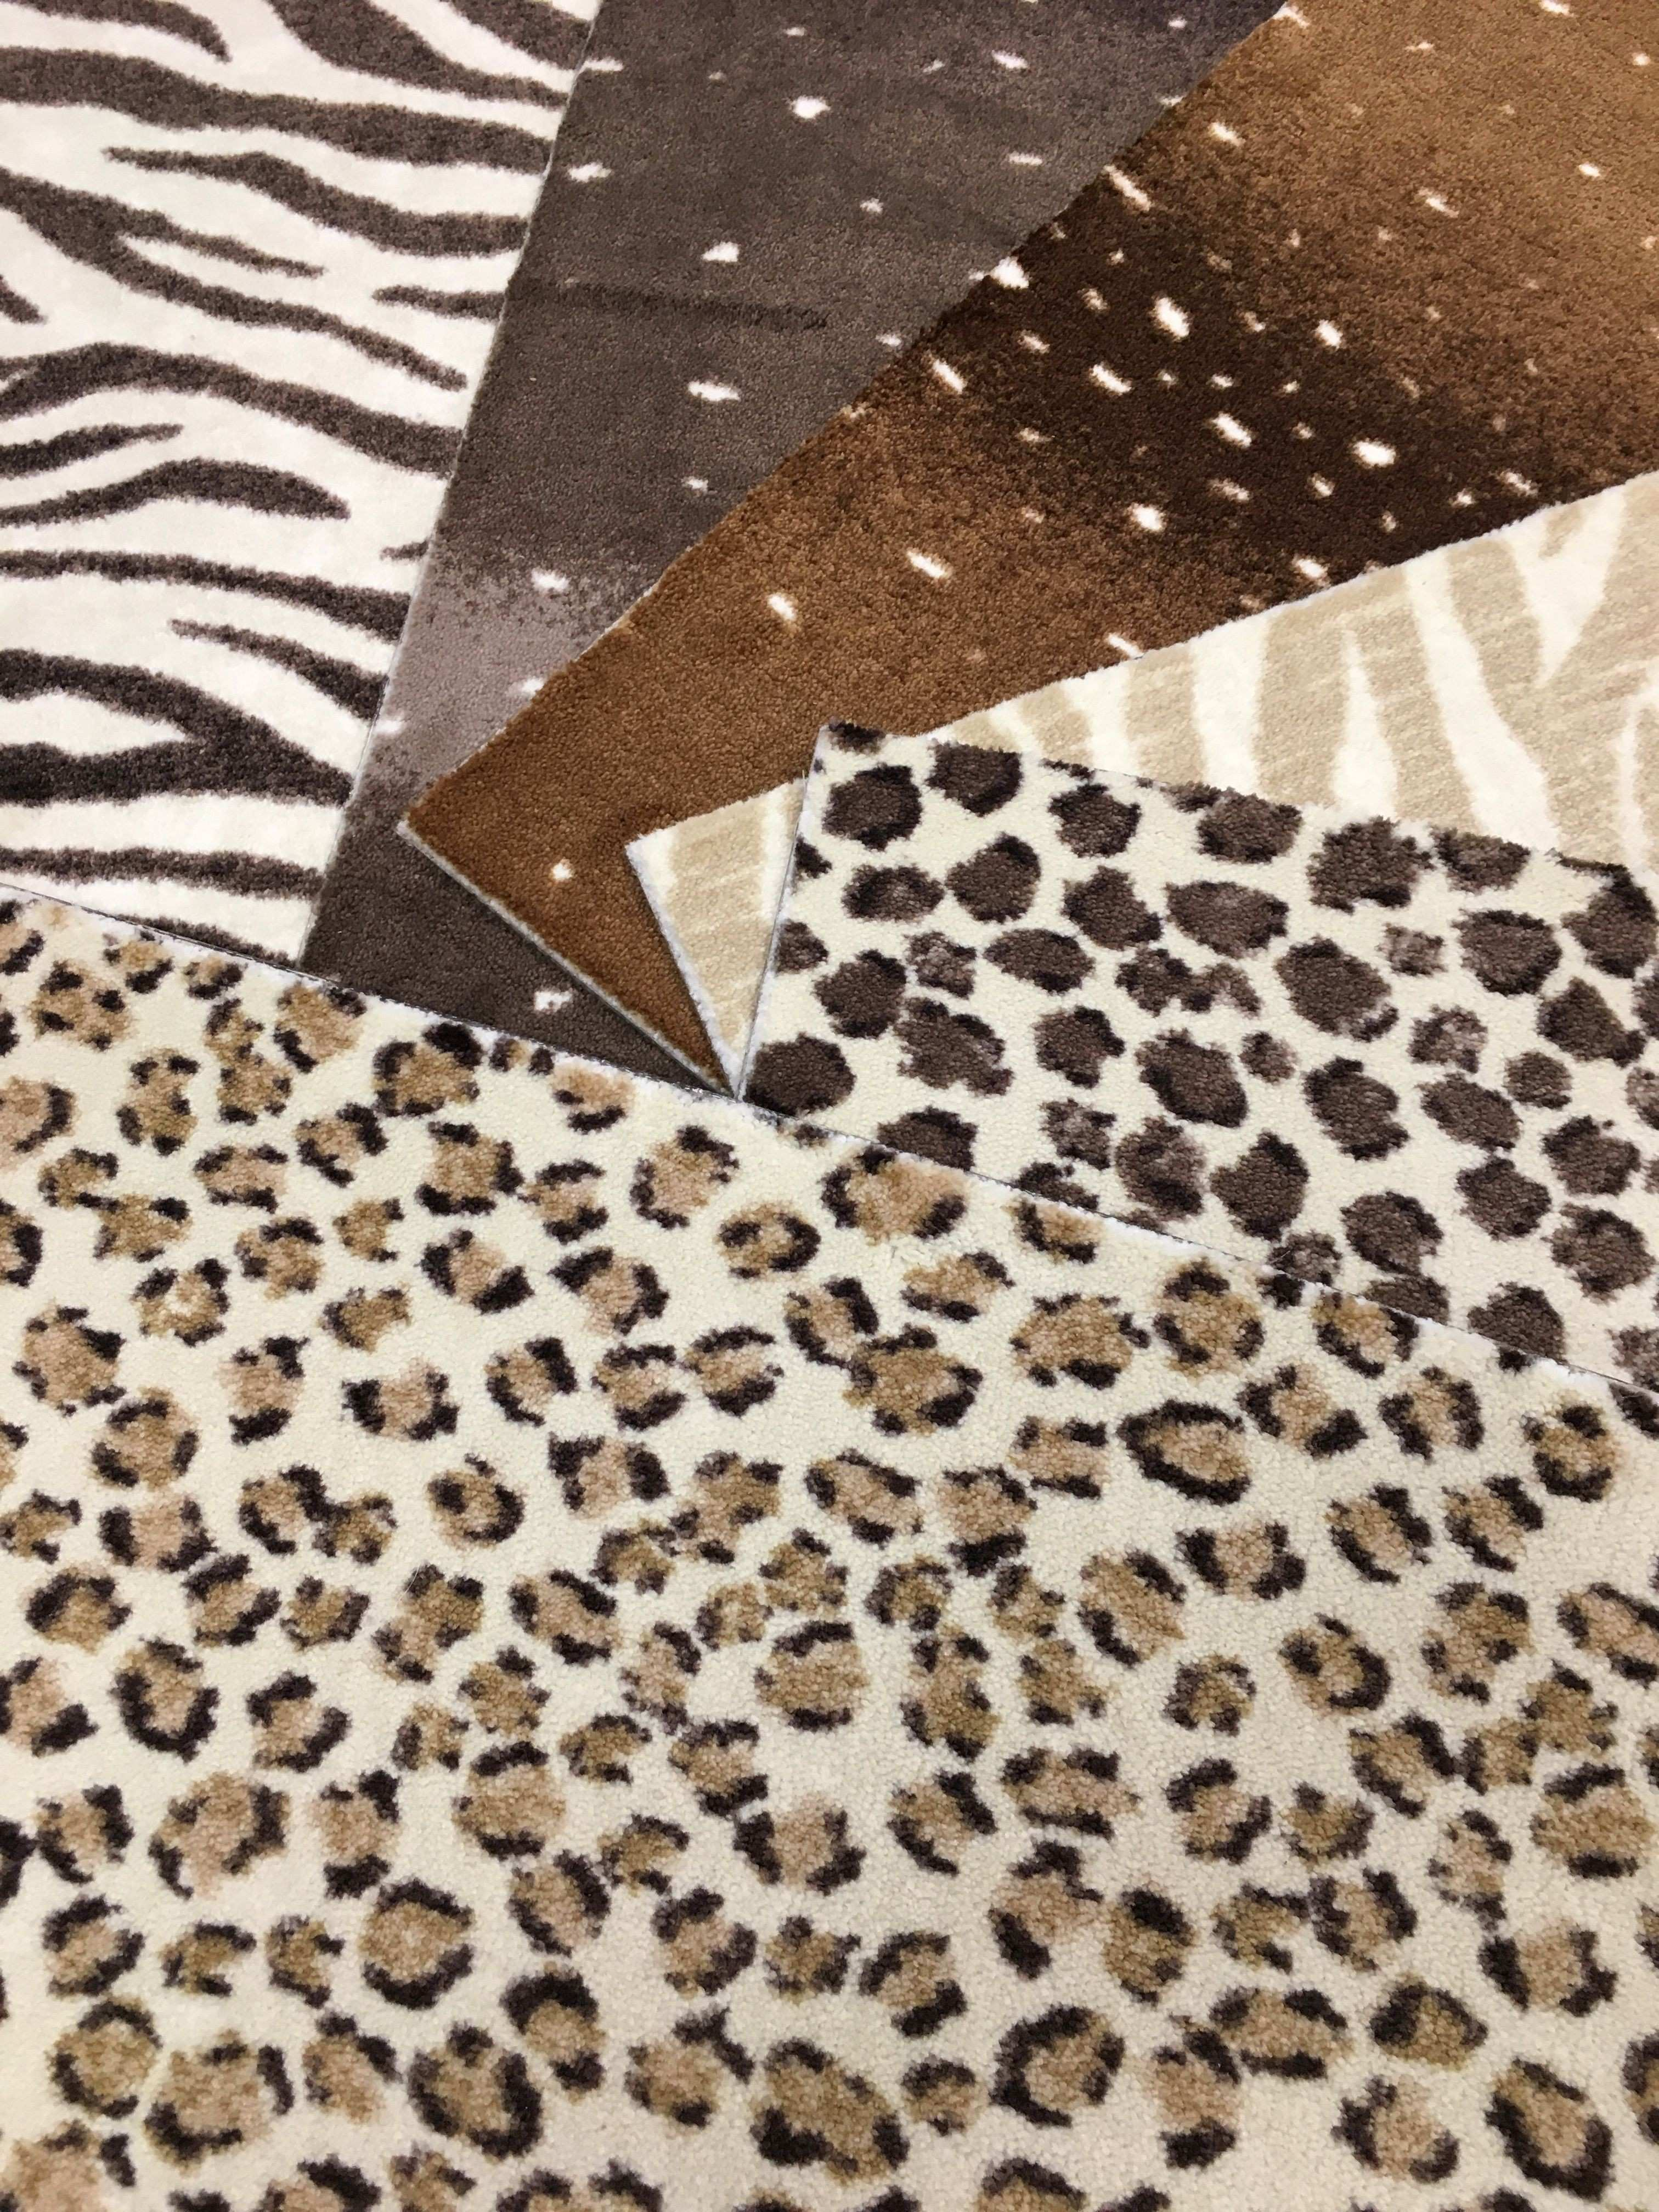 These nylon animal patterned pieces can be installed wall to wall